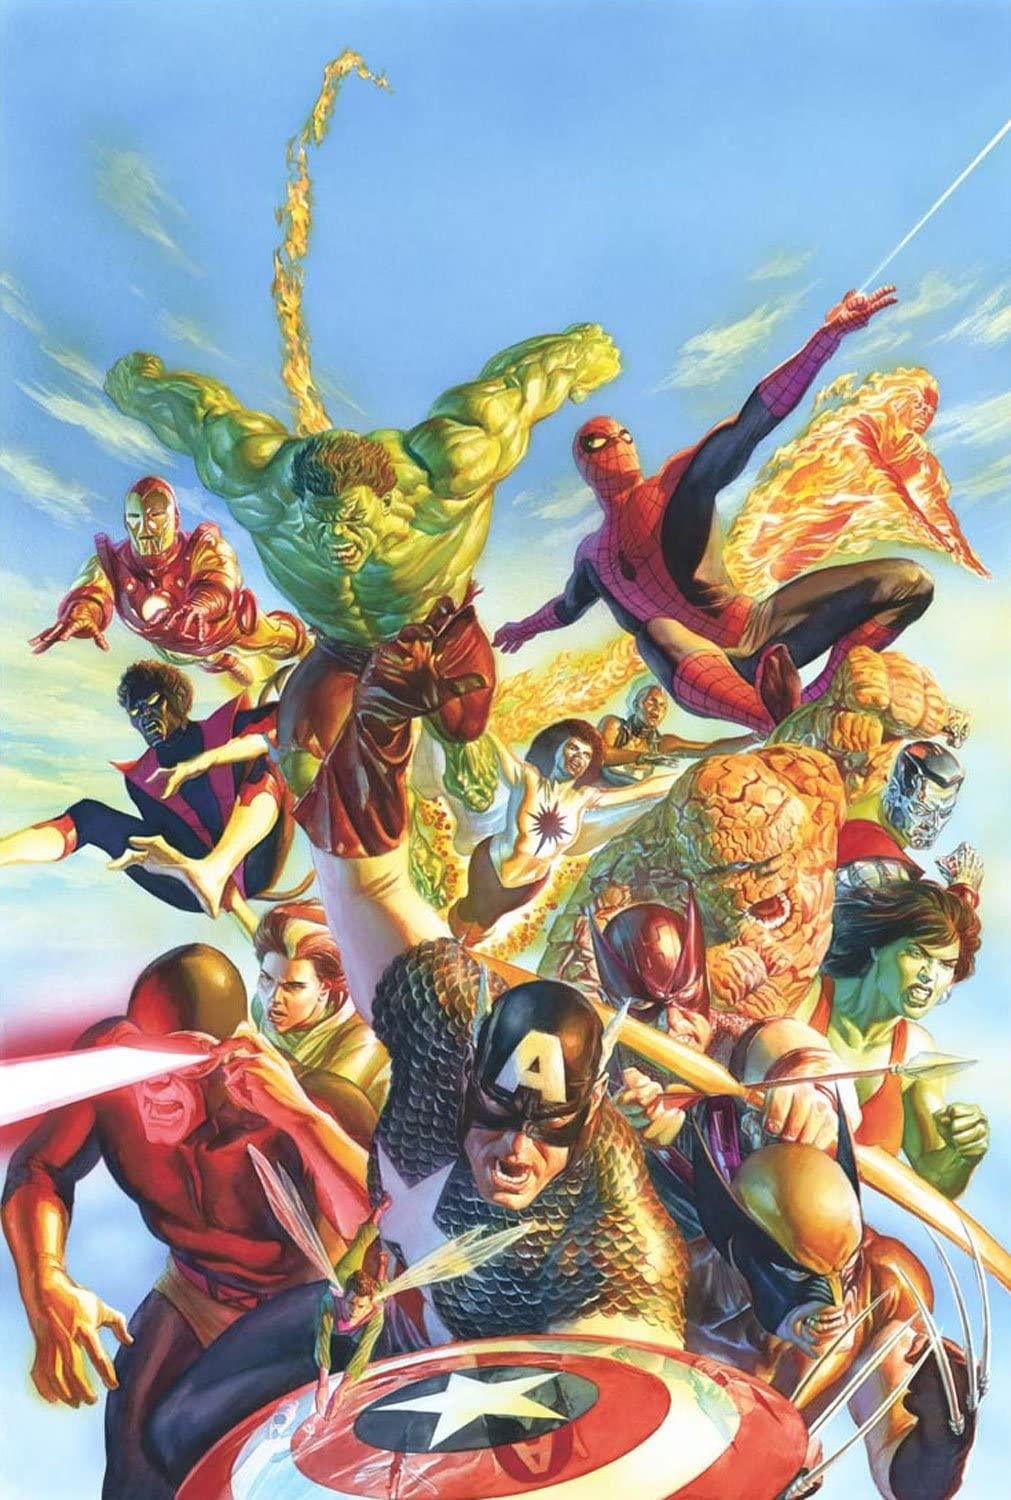 SECRET WARS BY ALEX ROSS Giclée On Canvas MARVEL FINE ART